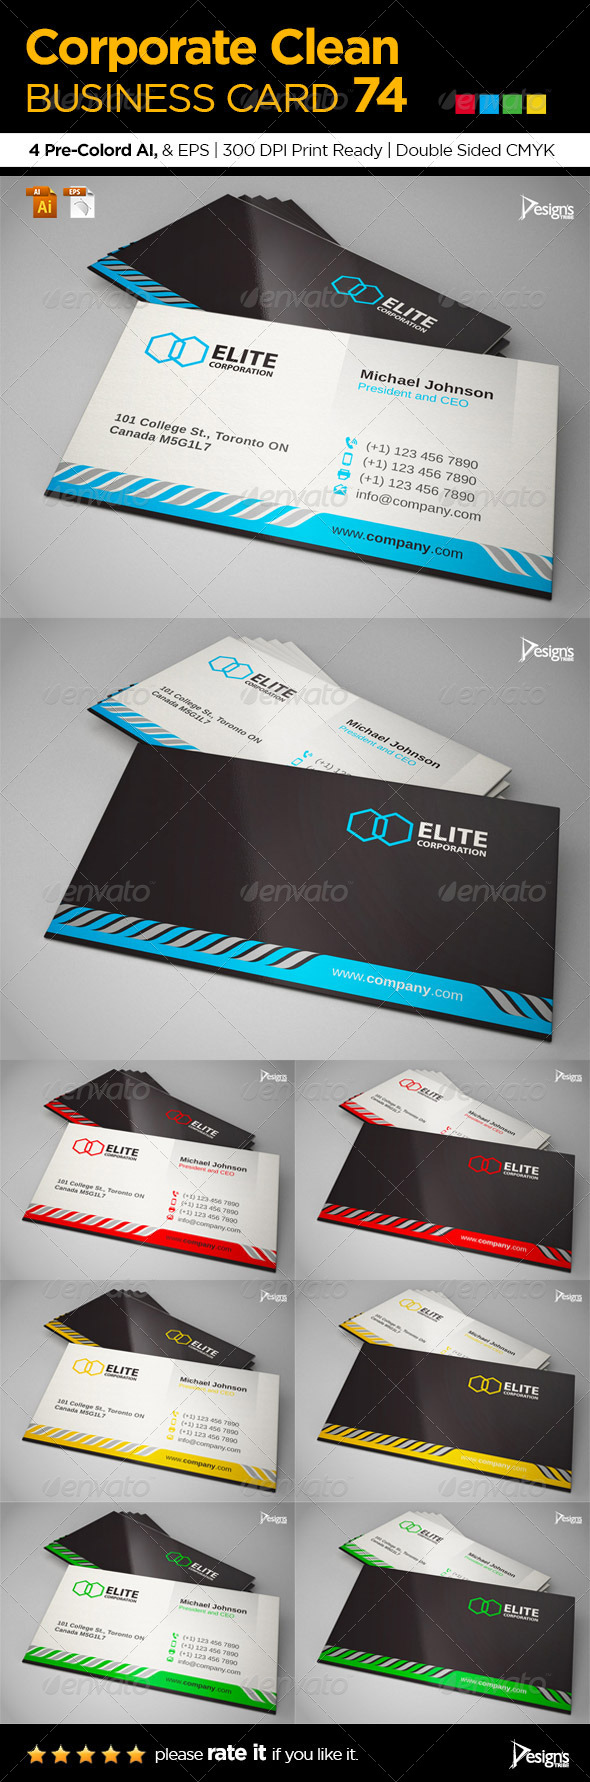 Corporate Clean Business Card 74 - Business Cards Print Templates